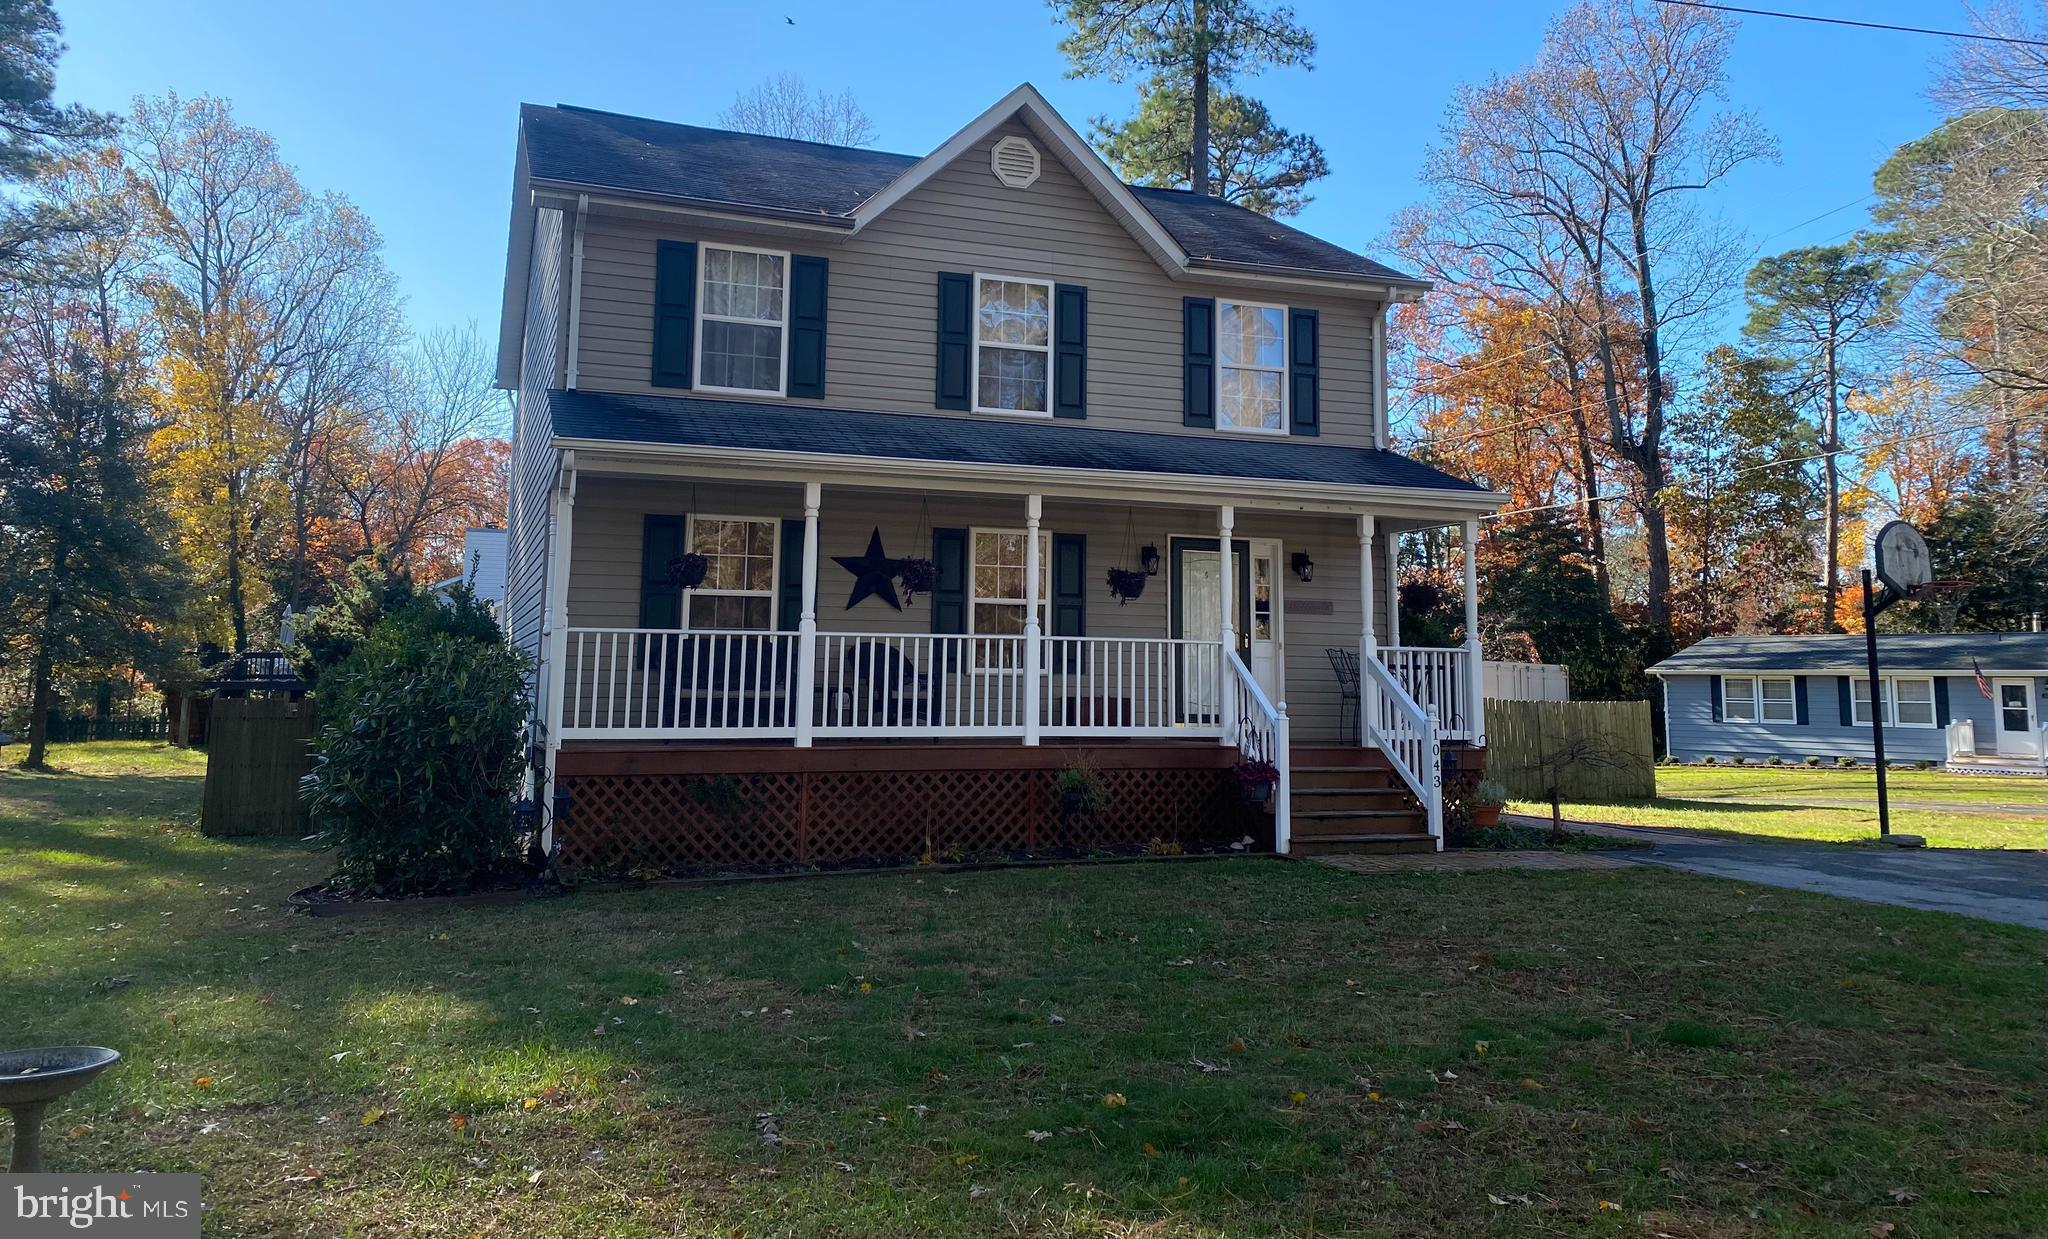 This adorable two story colonial is a must see! The home sits on a corner lot on a quiet street whic